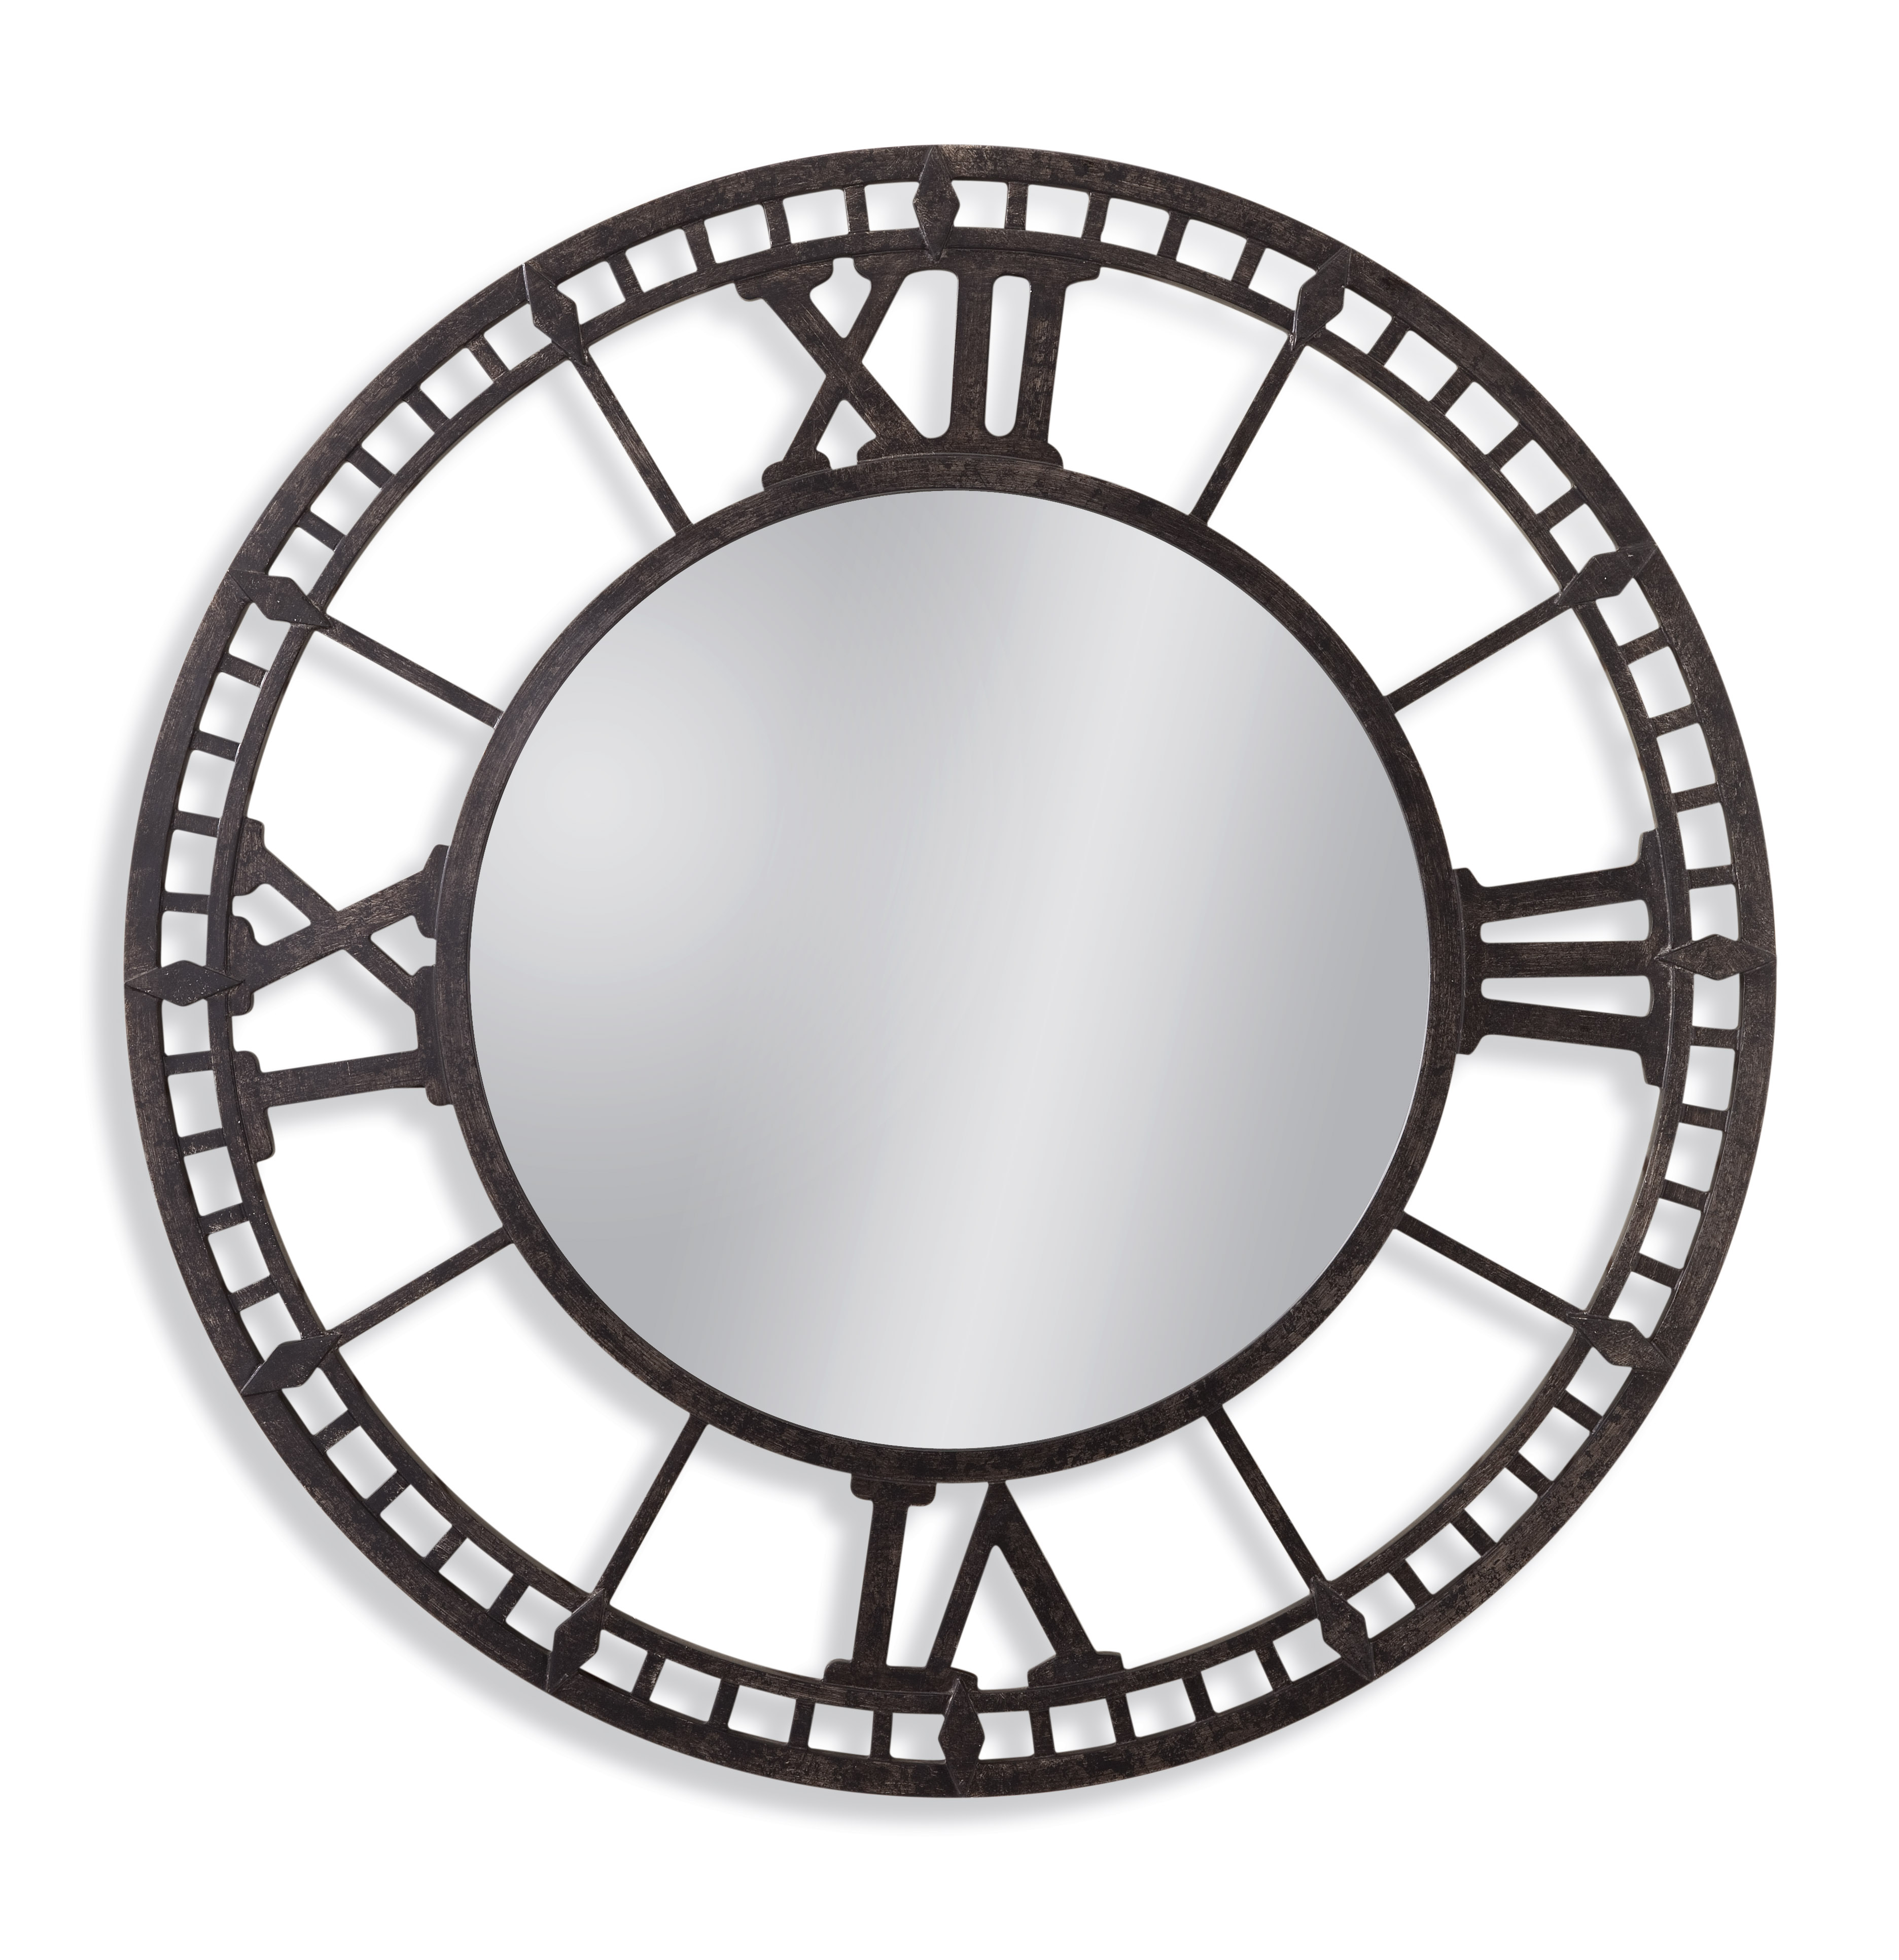 Belgian Luxe Ladson Wall Mirror by Bassett Mirror at Alison Craig Home Furnishings